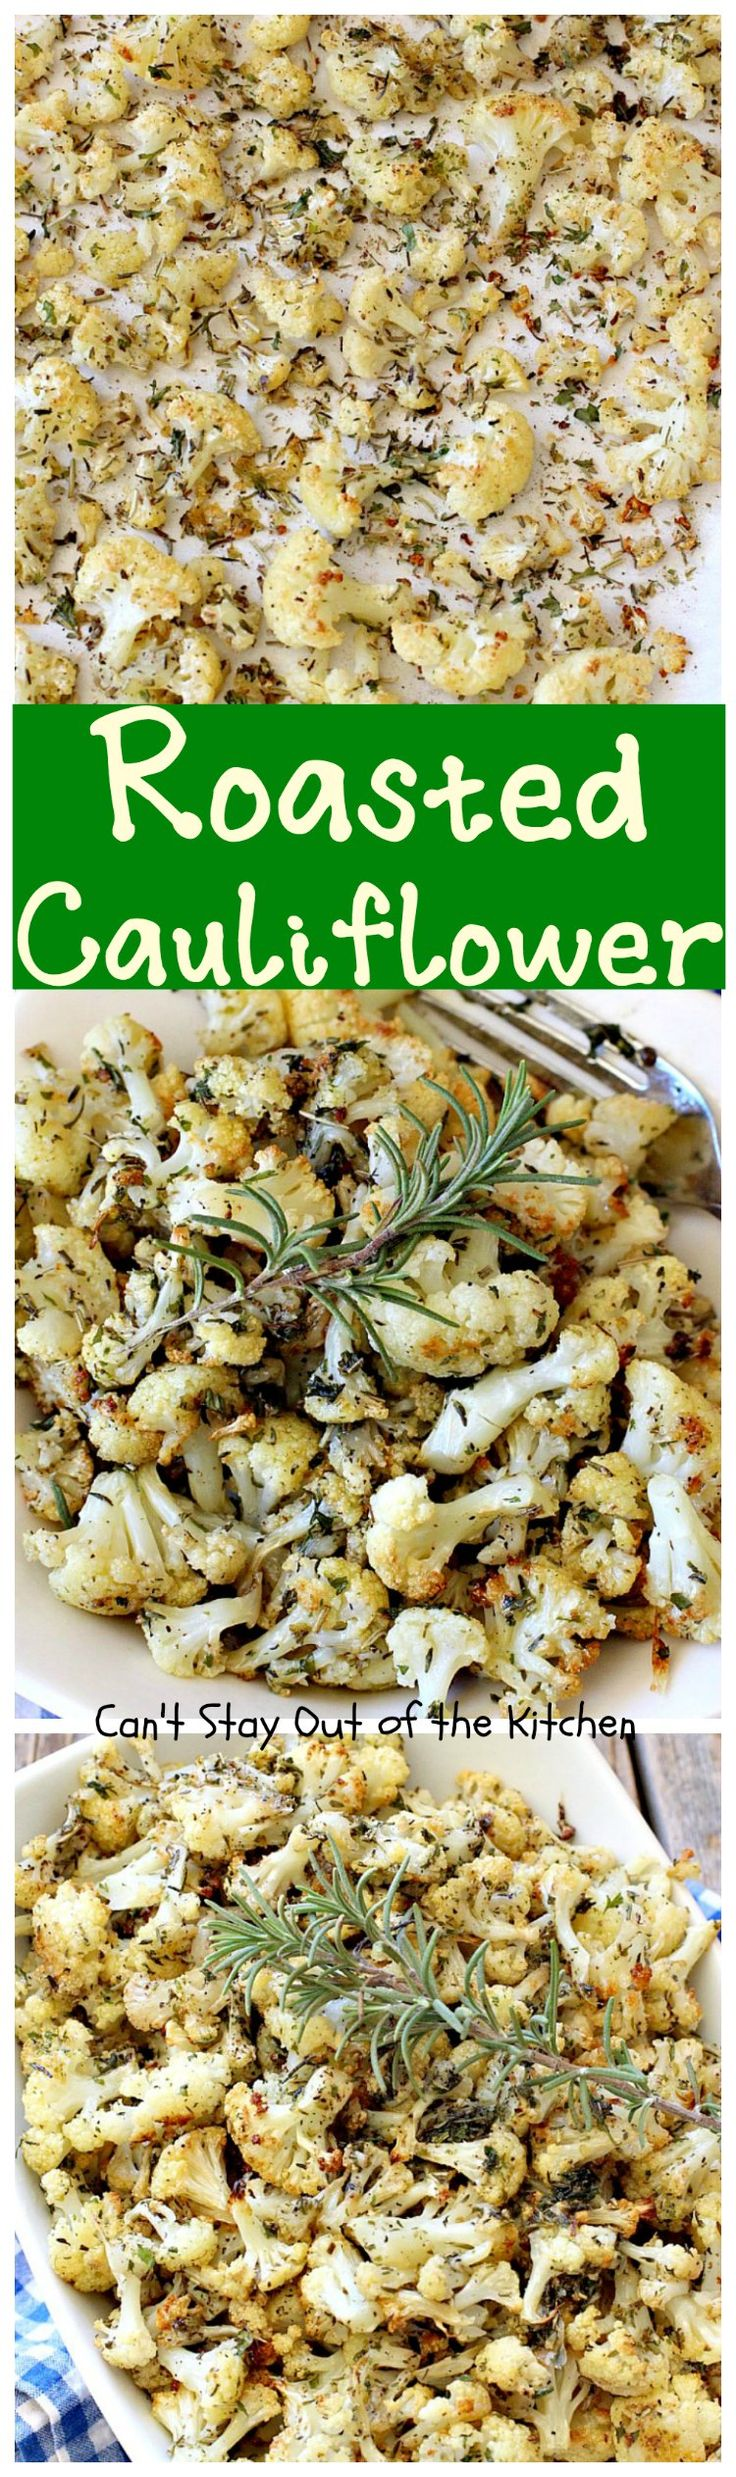 Roasted Cauliflower | Can't Stay Out of the Kitchen | fantastic side dish that's so quick